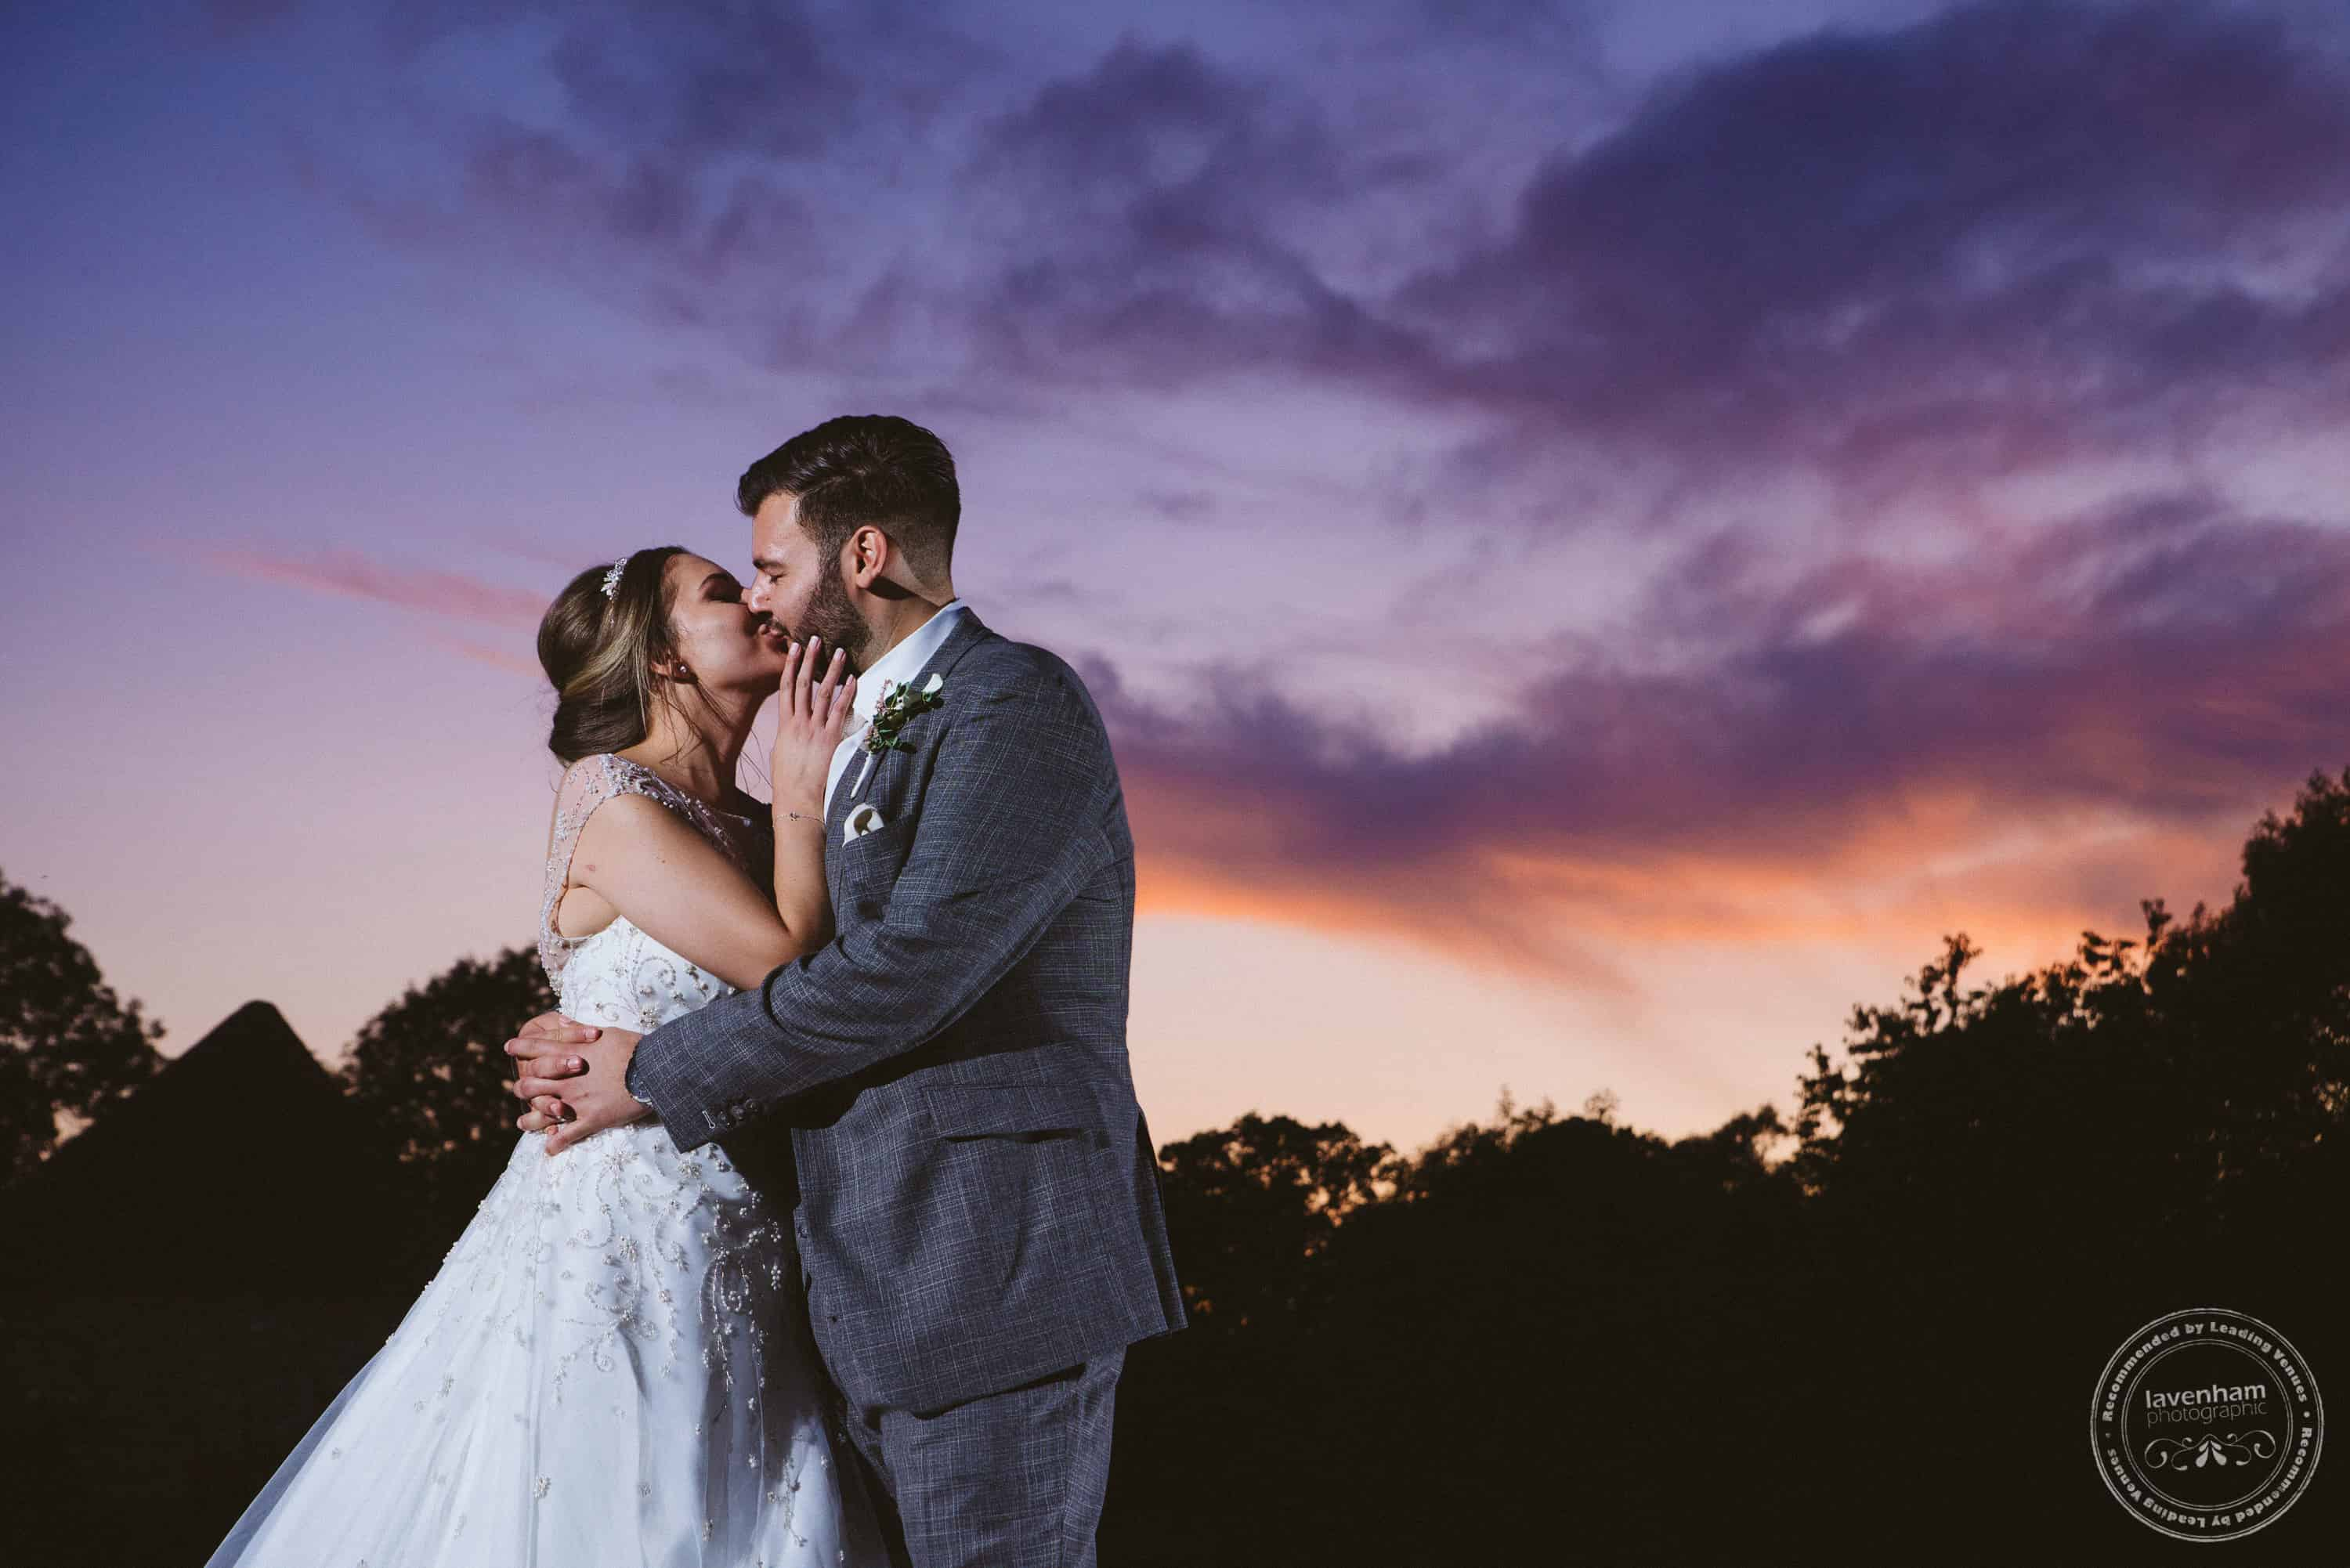 Dramatic sunset at Leez Priory, lit with off-camera flash to save the bride and groom from being silhouettes